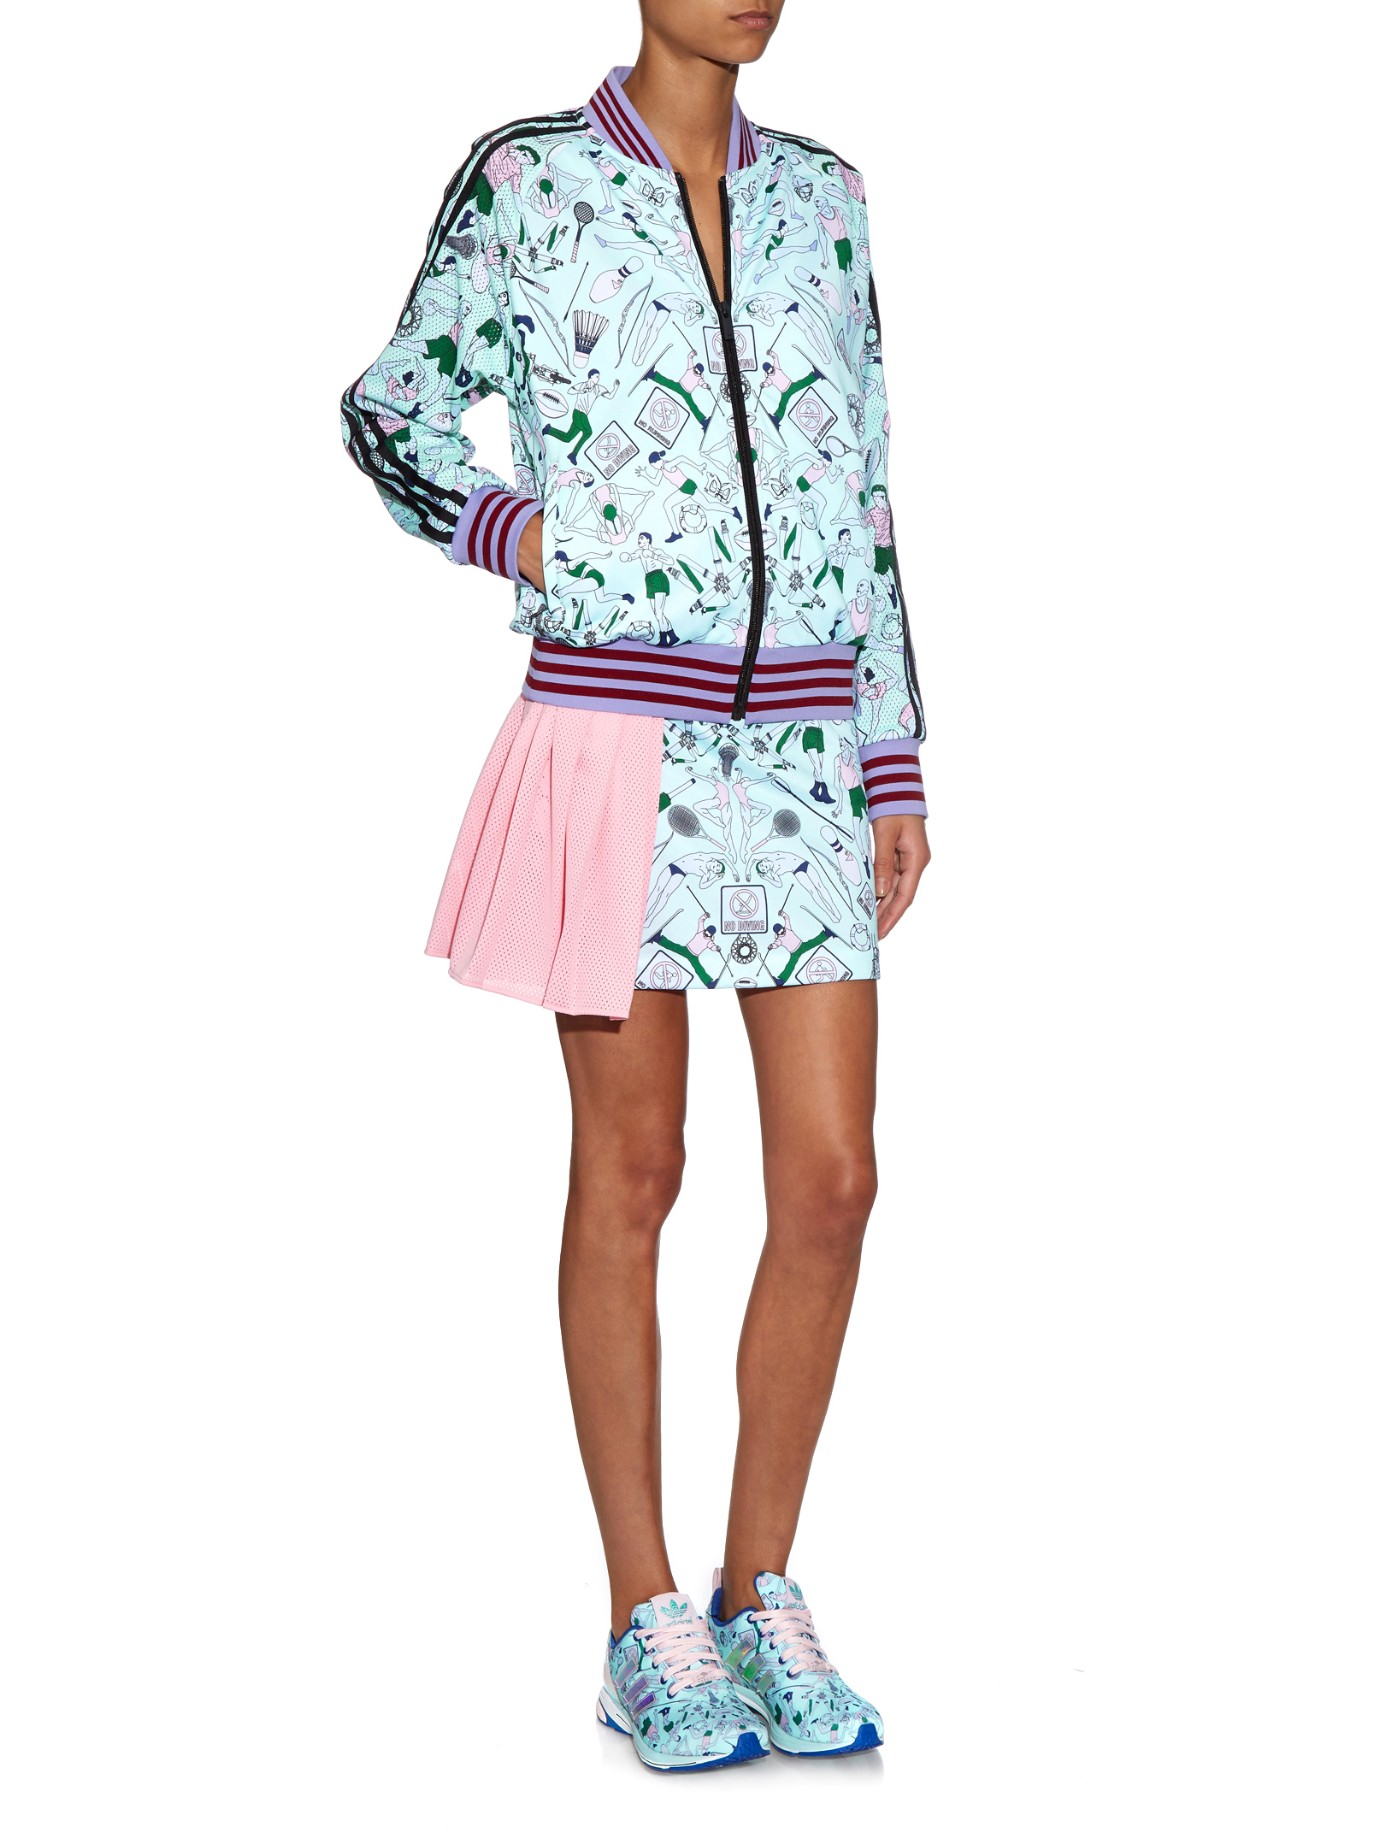 Hot Lowest Price Online Exc printed skirt Mary Katrantzou Cheap Outlet Store ZddUeQHnR